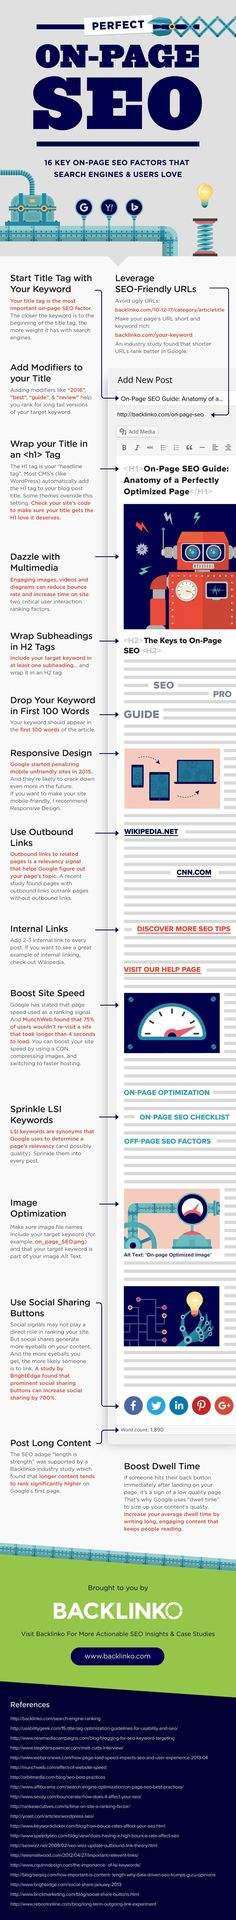 An insanely large infographic that's chock full of useful information...from /backlinko/.com